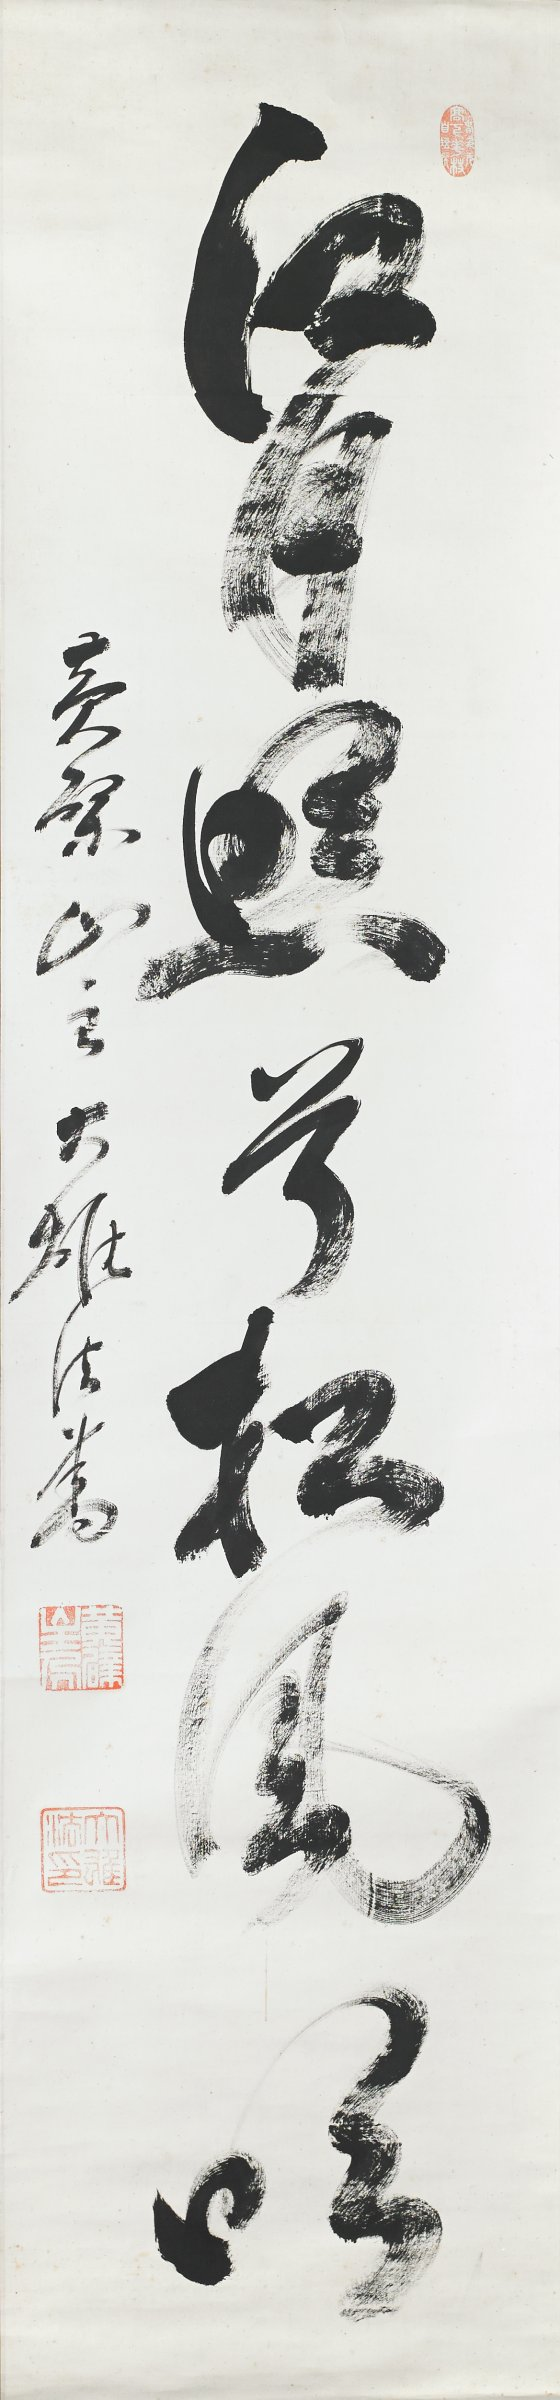 Hanging scroll with calligraphy seven-character poem, with inscription: The Moon Shines on the Inlet, the Wind Sings in the Pines